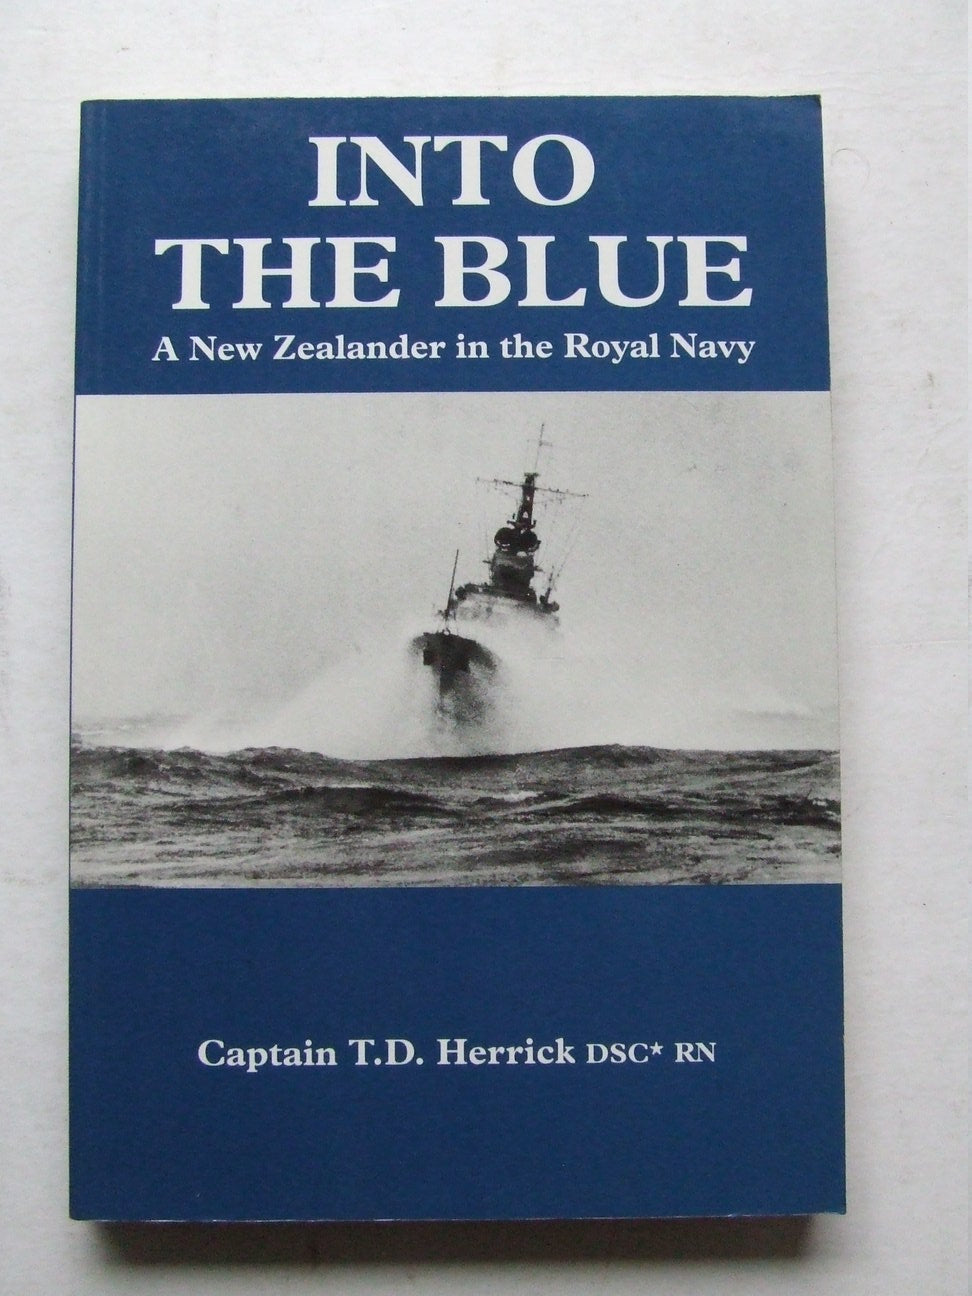 Into the Blue, a New Zealander in the Royal Navy